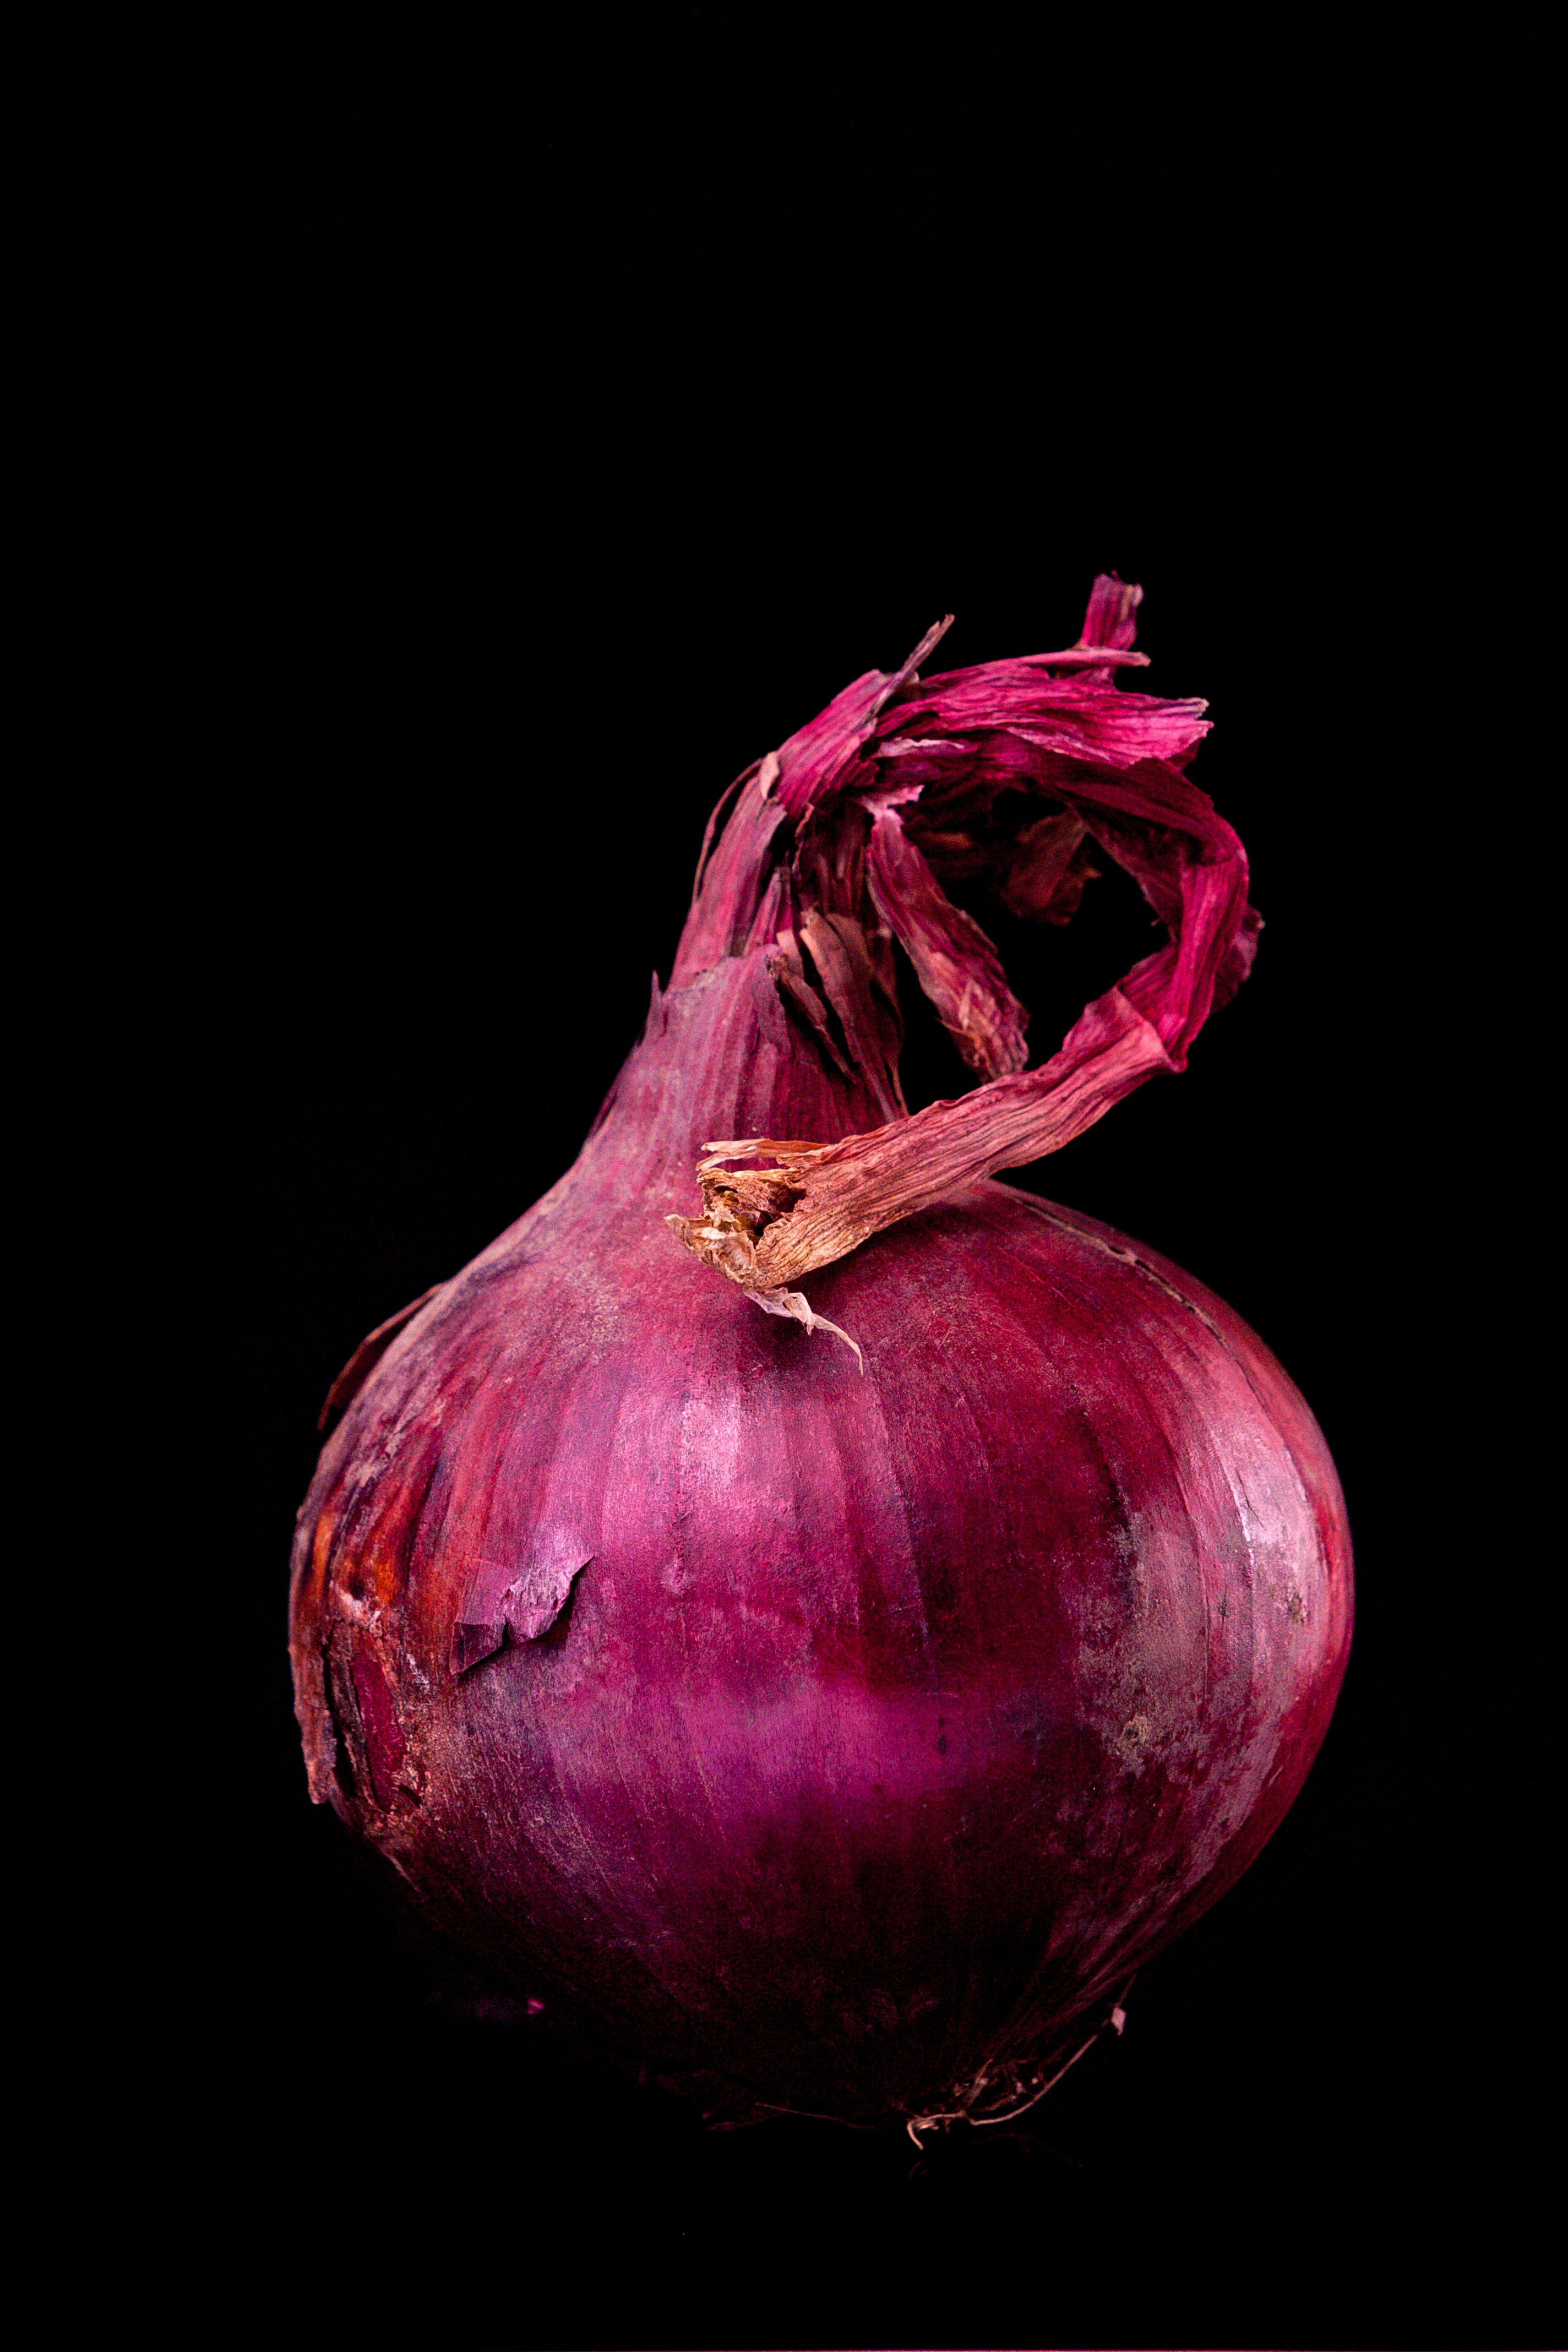 An image of the million dollar onion. Or so. Canon EOS 450d + 70-200 2,8 L + two flashes. Join the million dollard food army and create million dollar food pictures. Why? Just for fun! Follow me on instagram (mypixelsat) and my blog www.mypixels.at